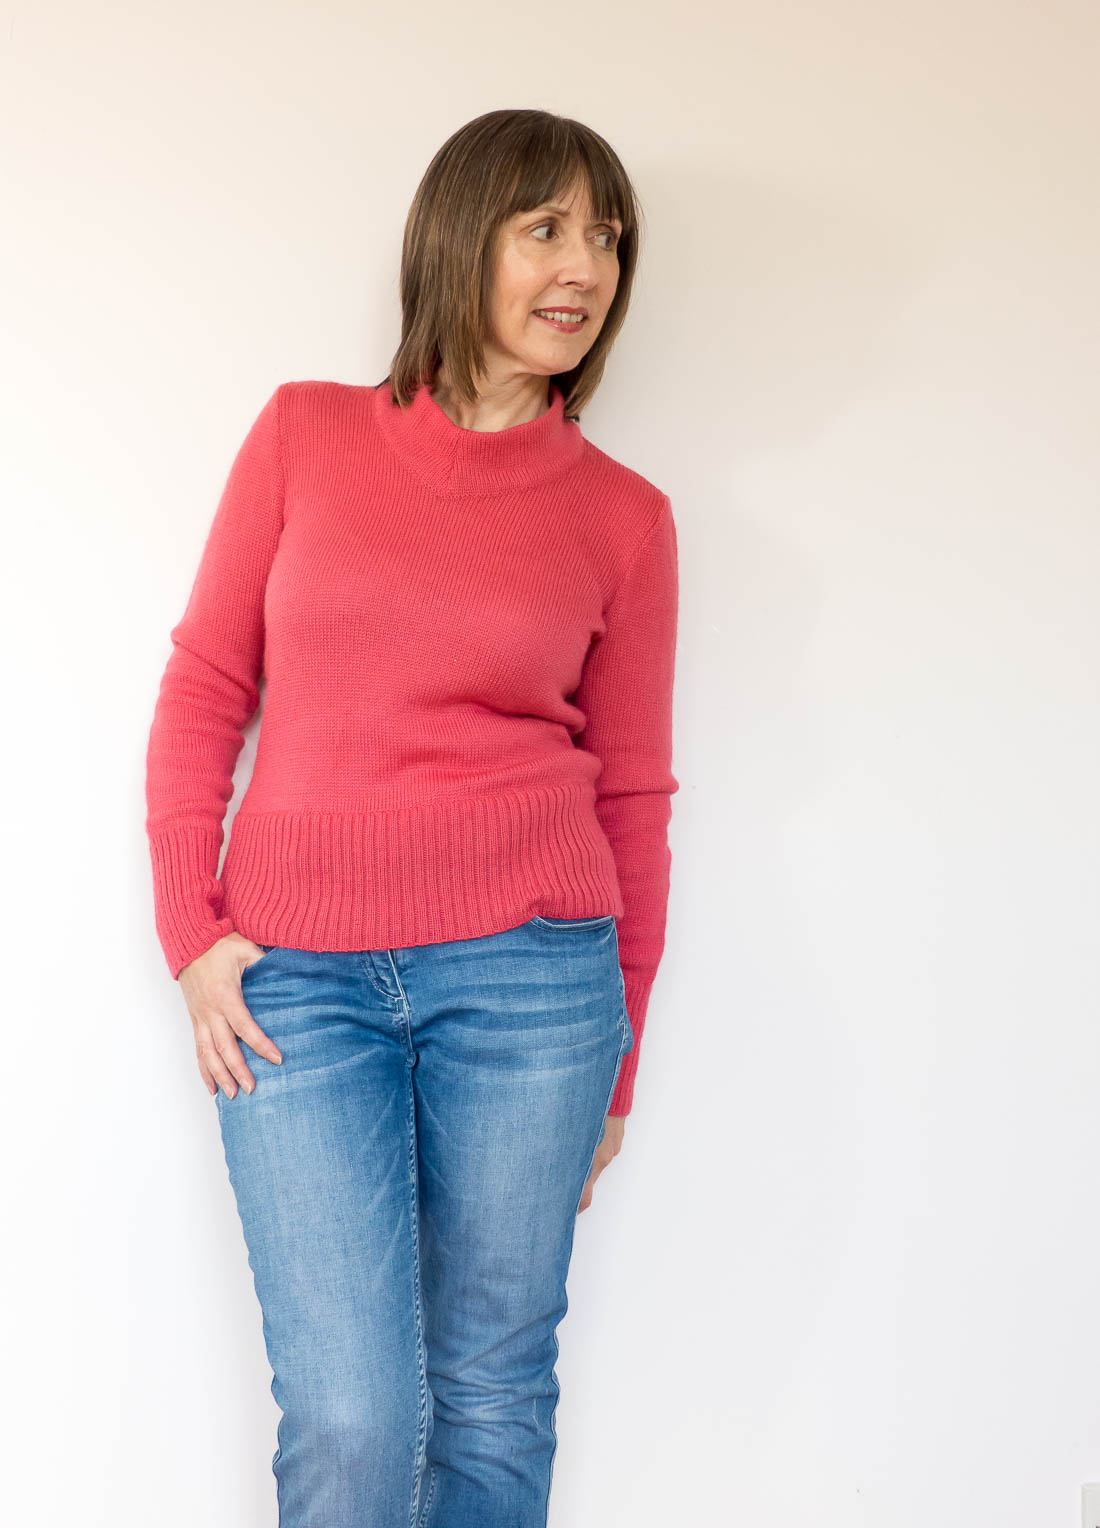 How I refashioned a sweater